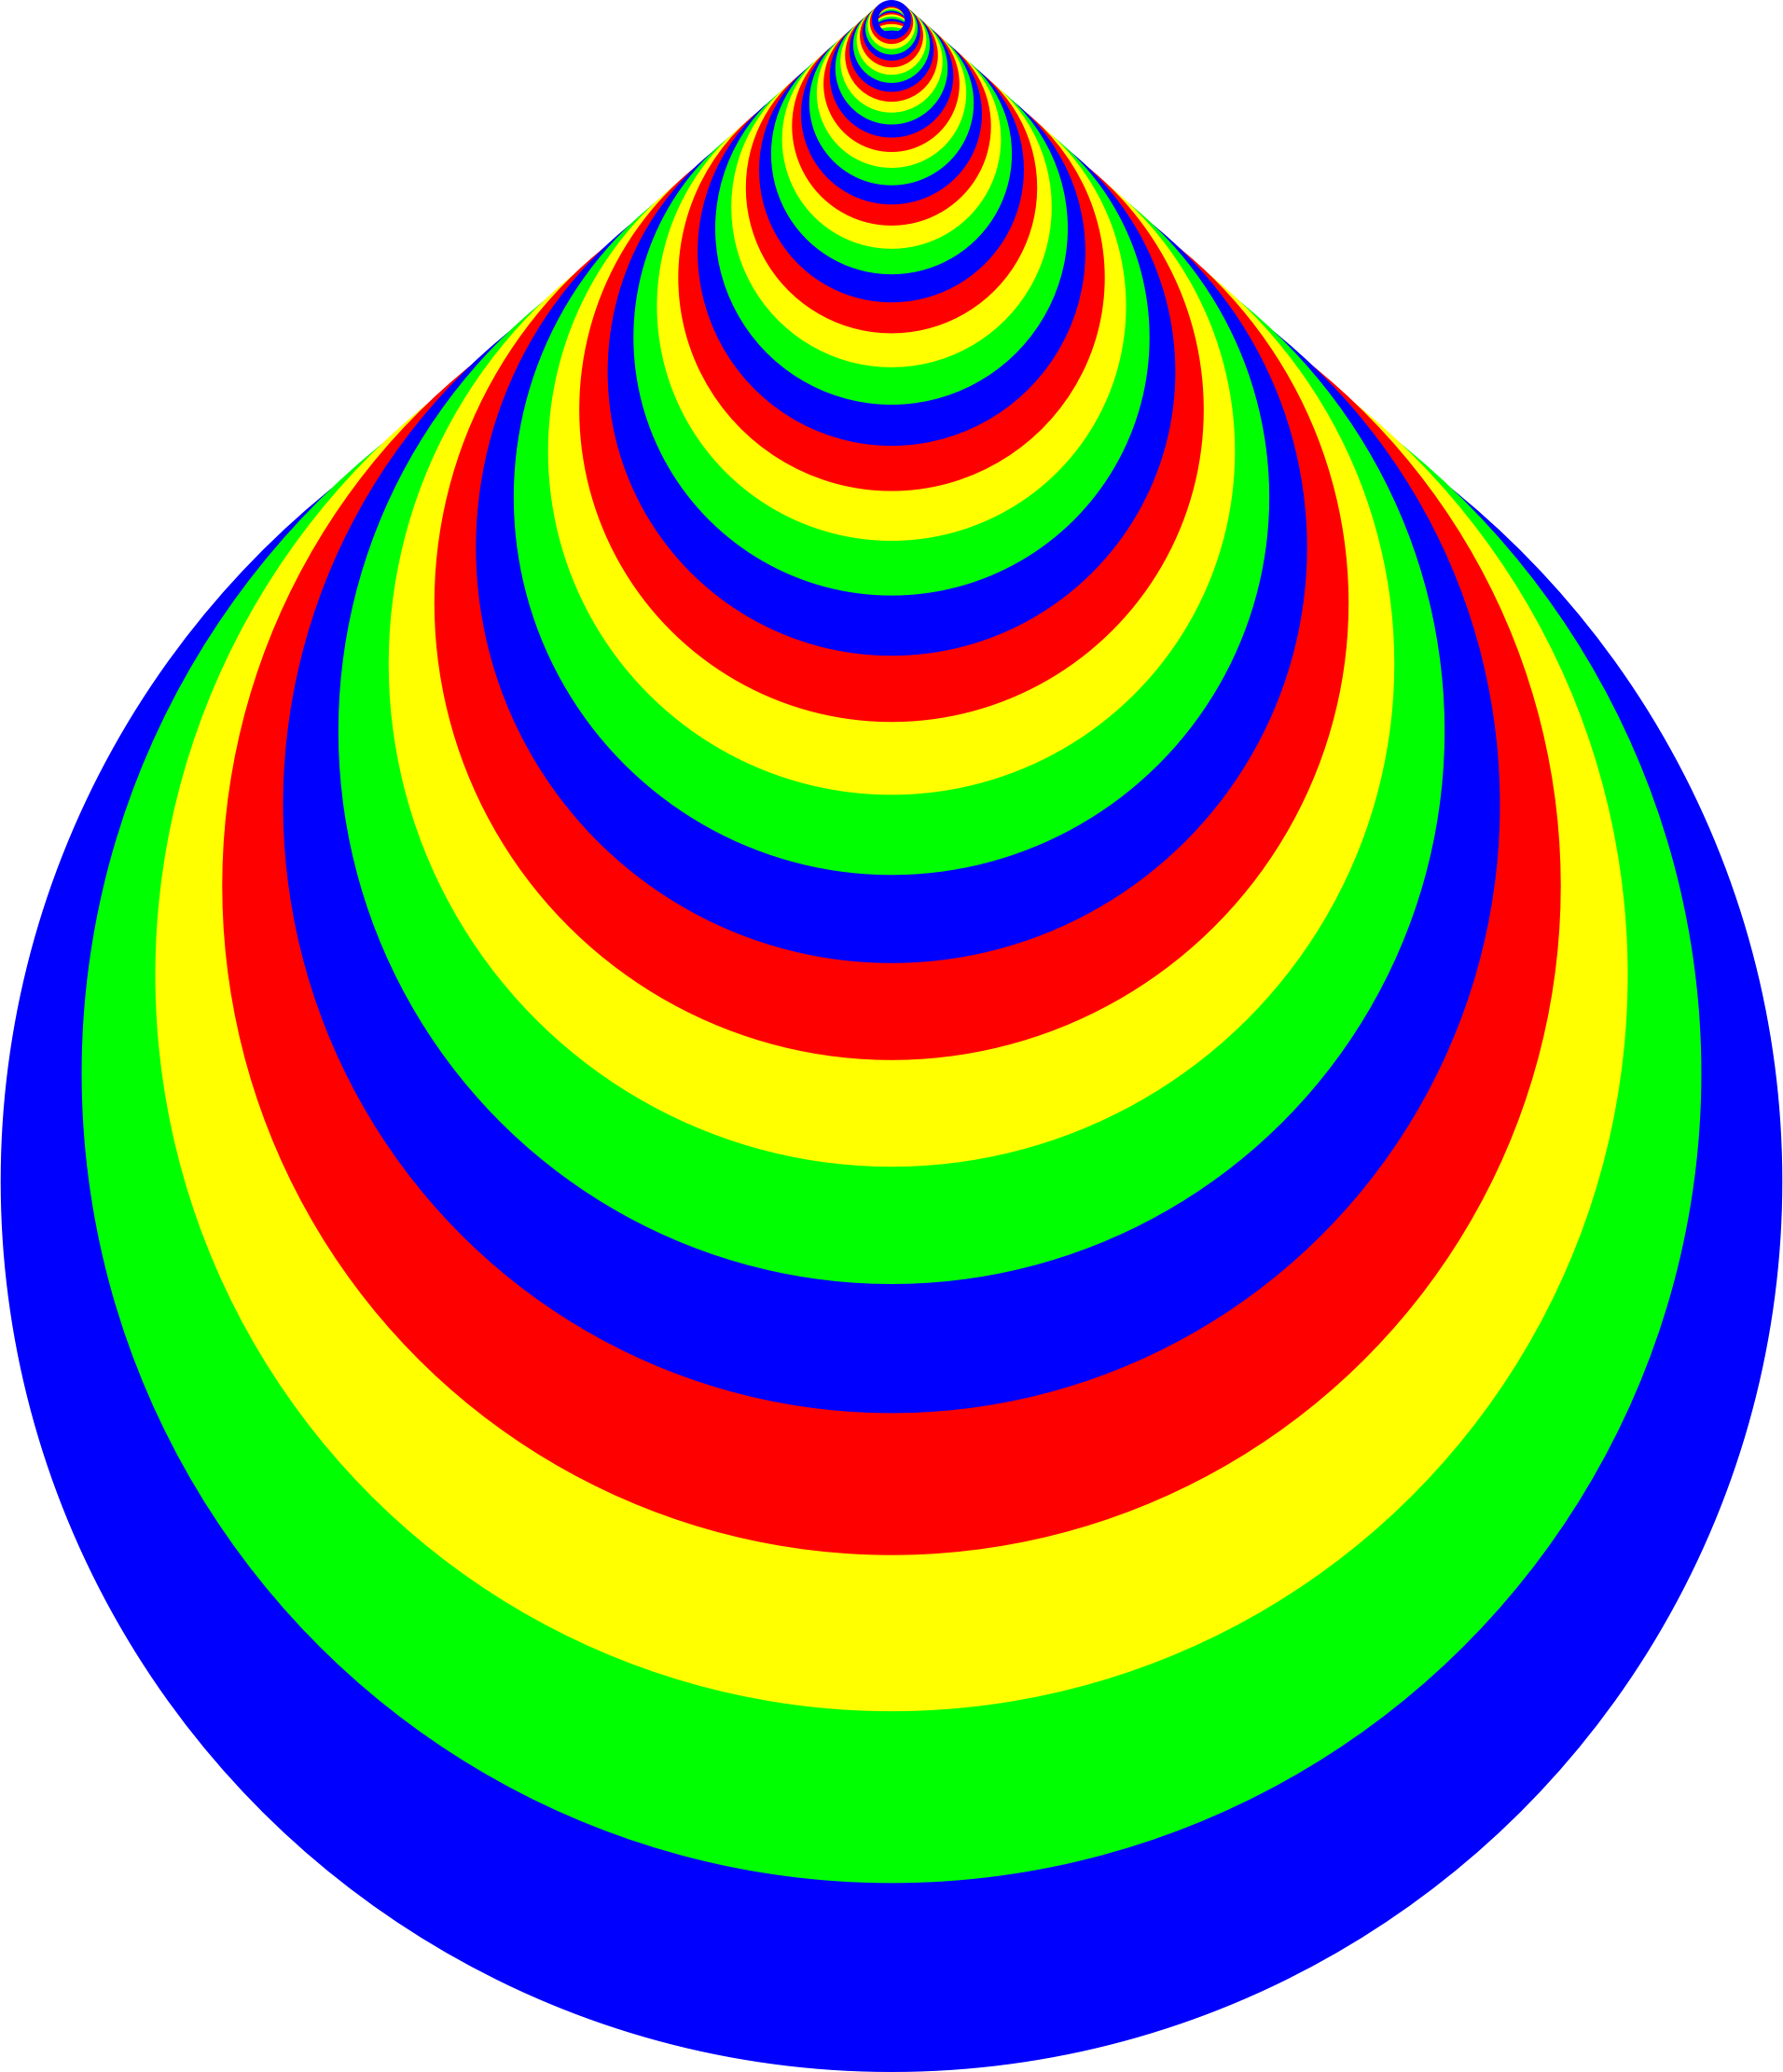 Colorful Concentric Rings by GDJ